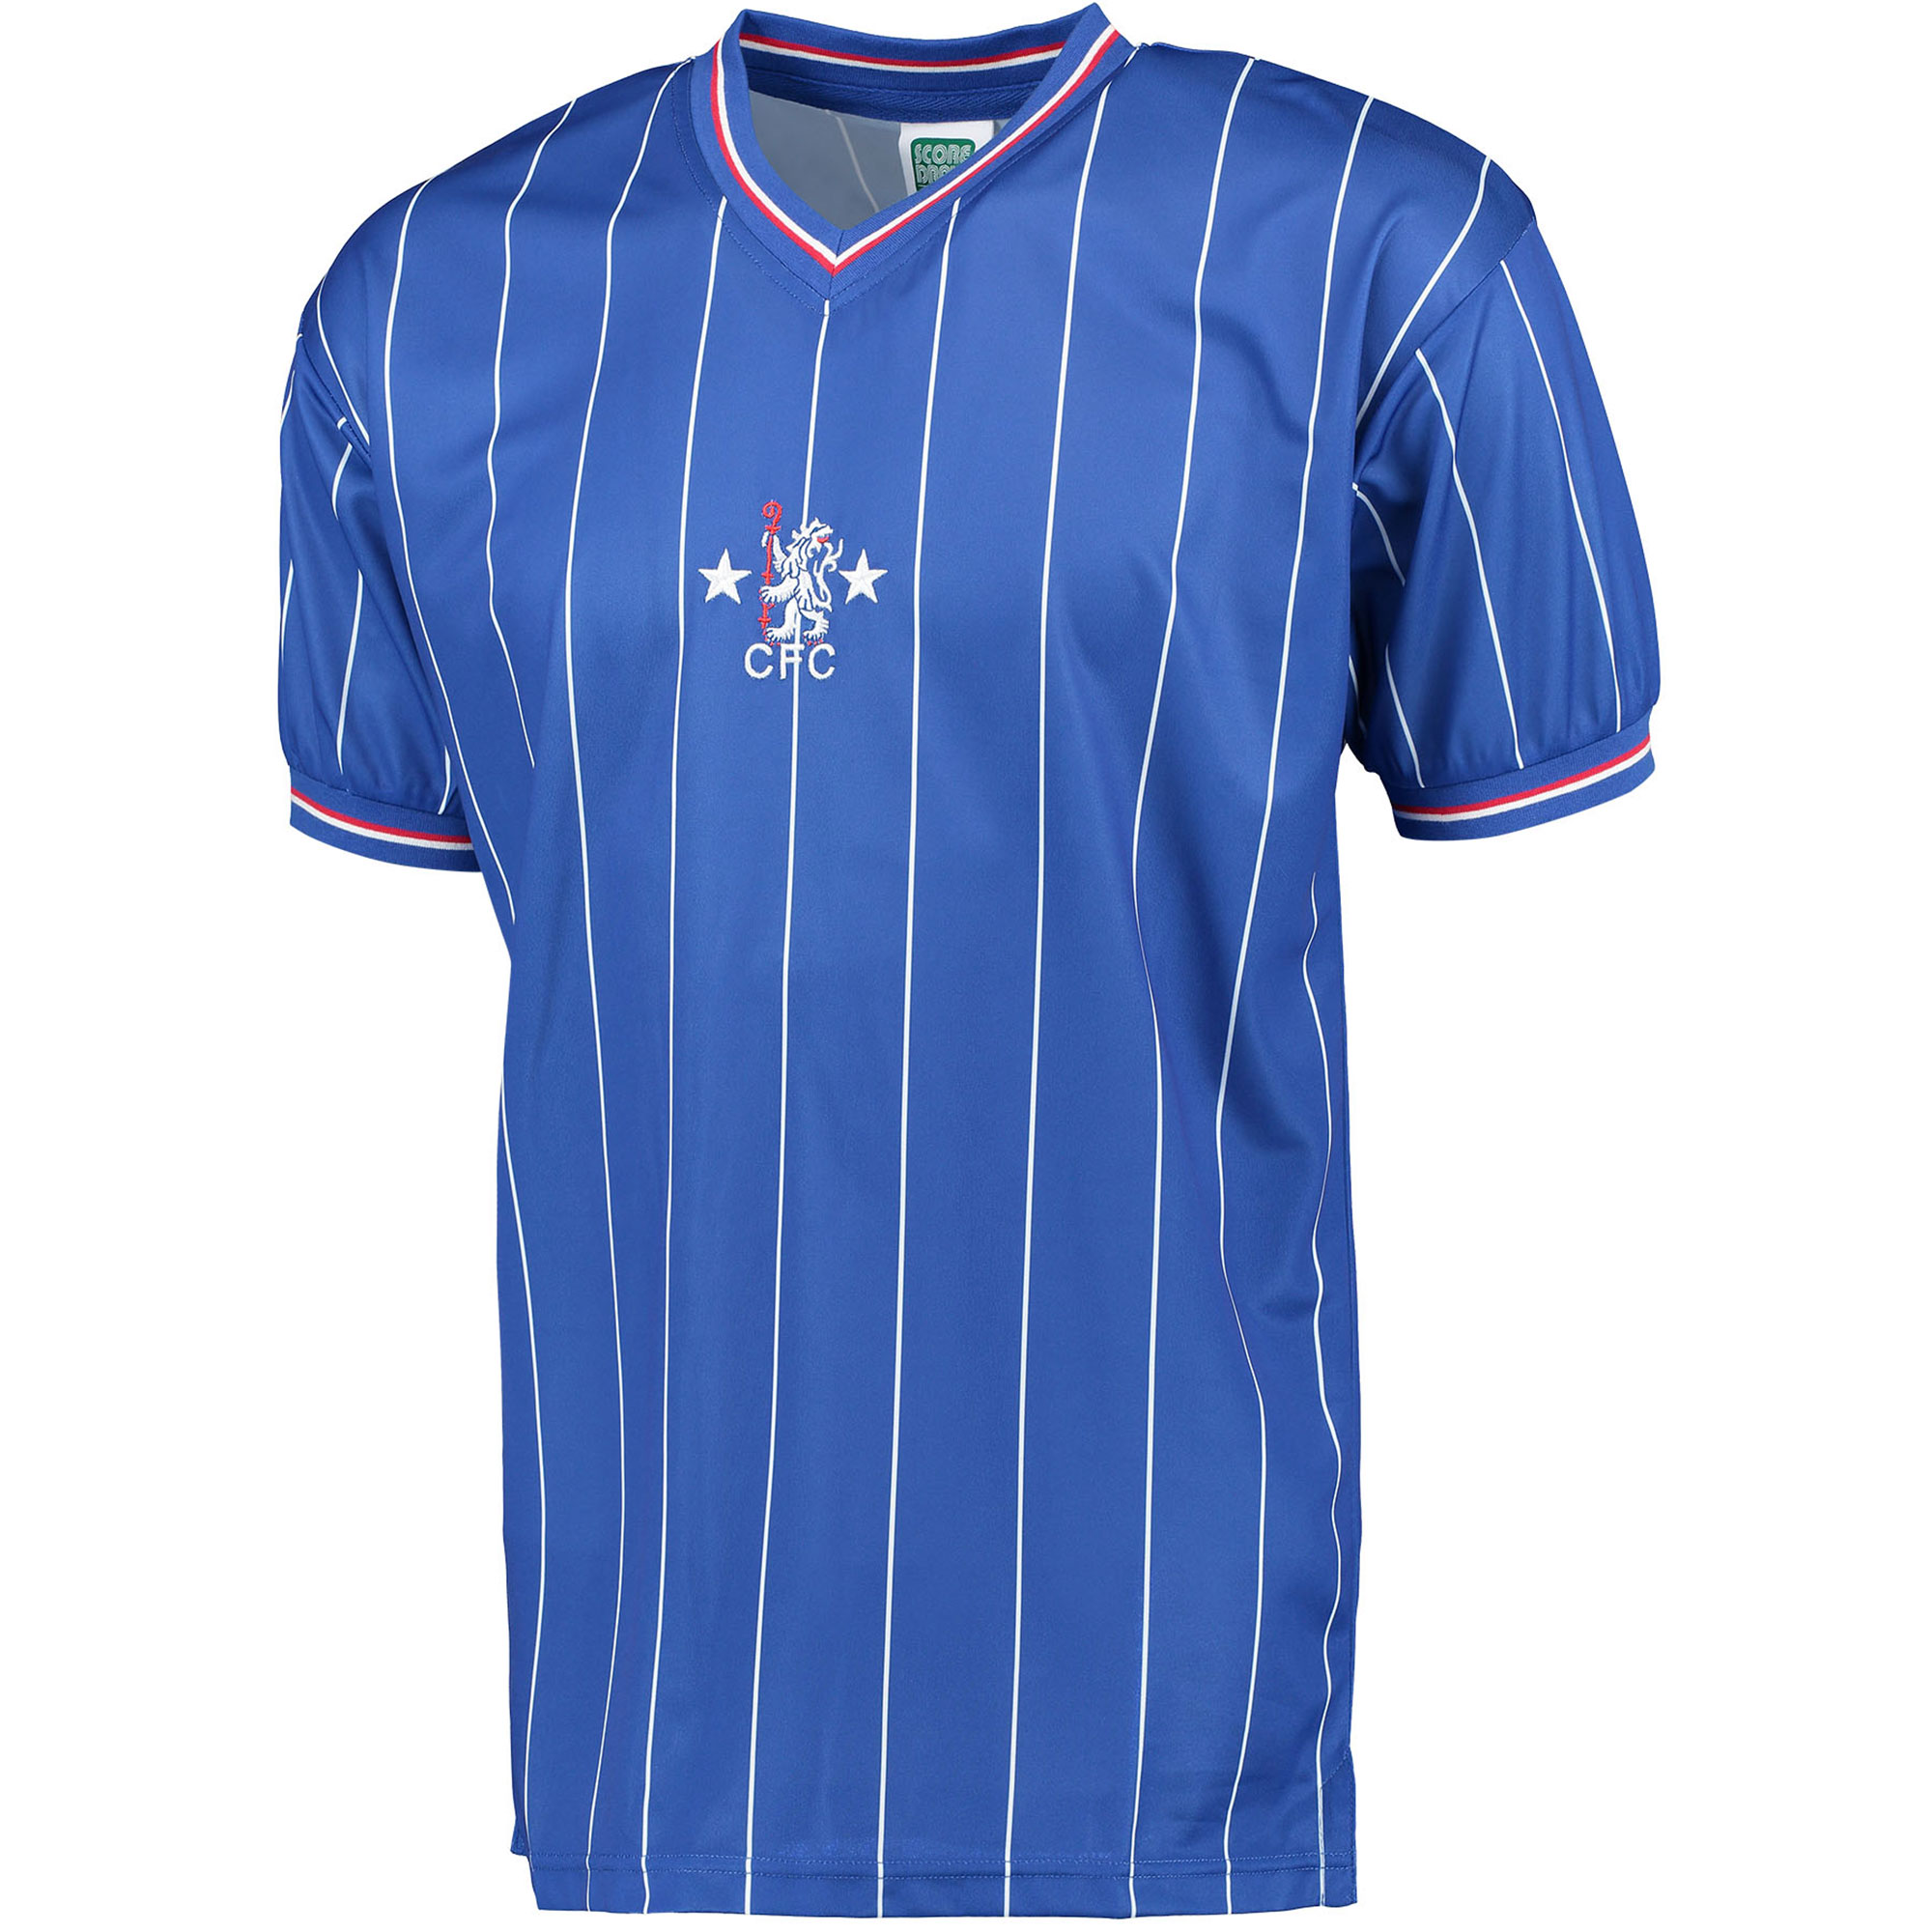 Chelsea 1982 Home Shirt - Royal